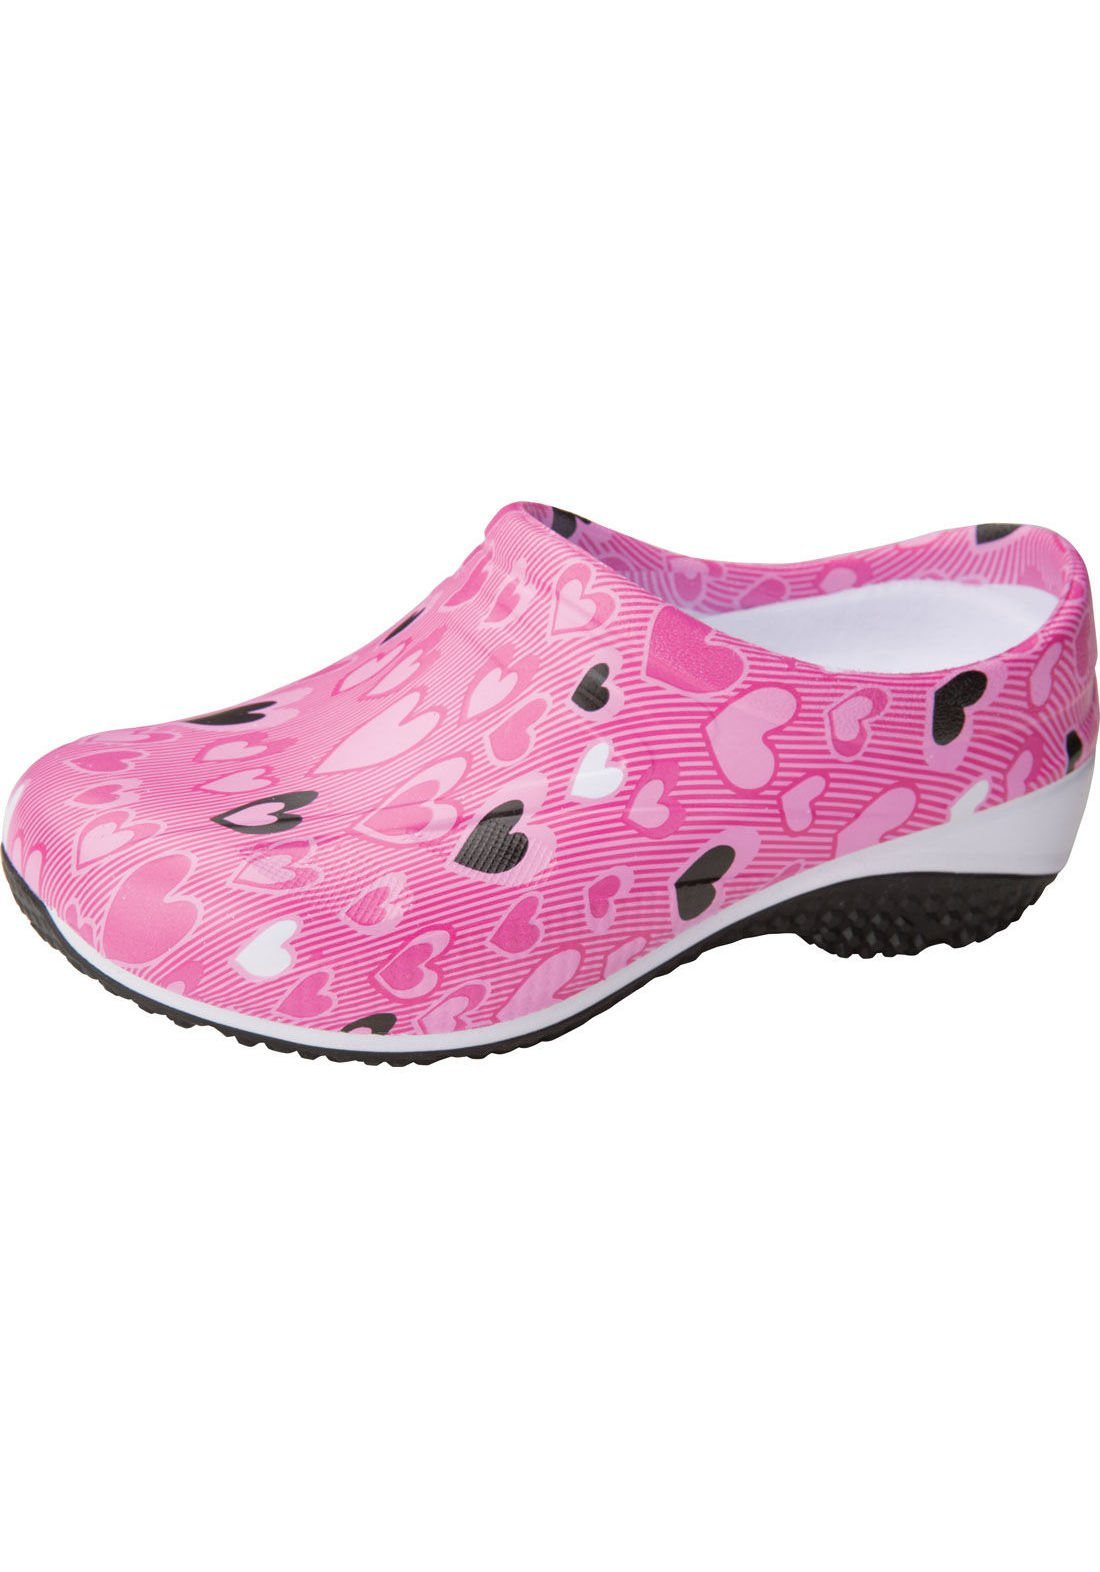 AnyWear Women's Exact Slip Resistant Clog,All About Love,US 5 M